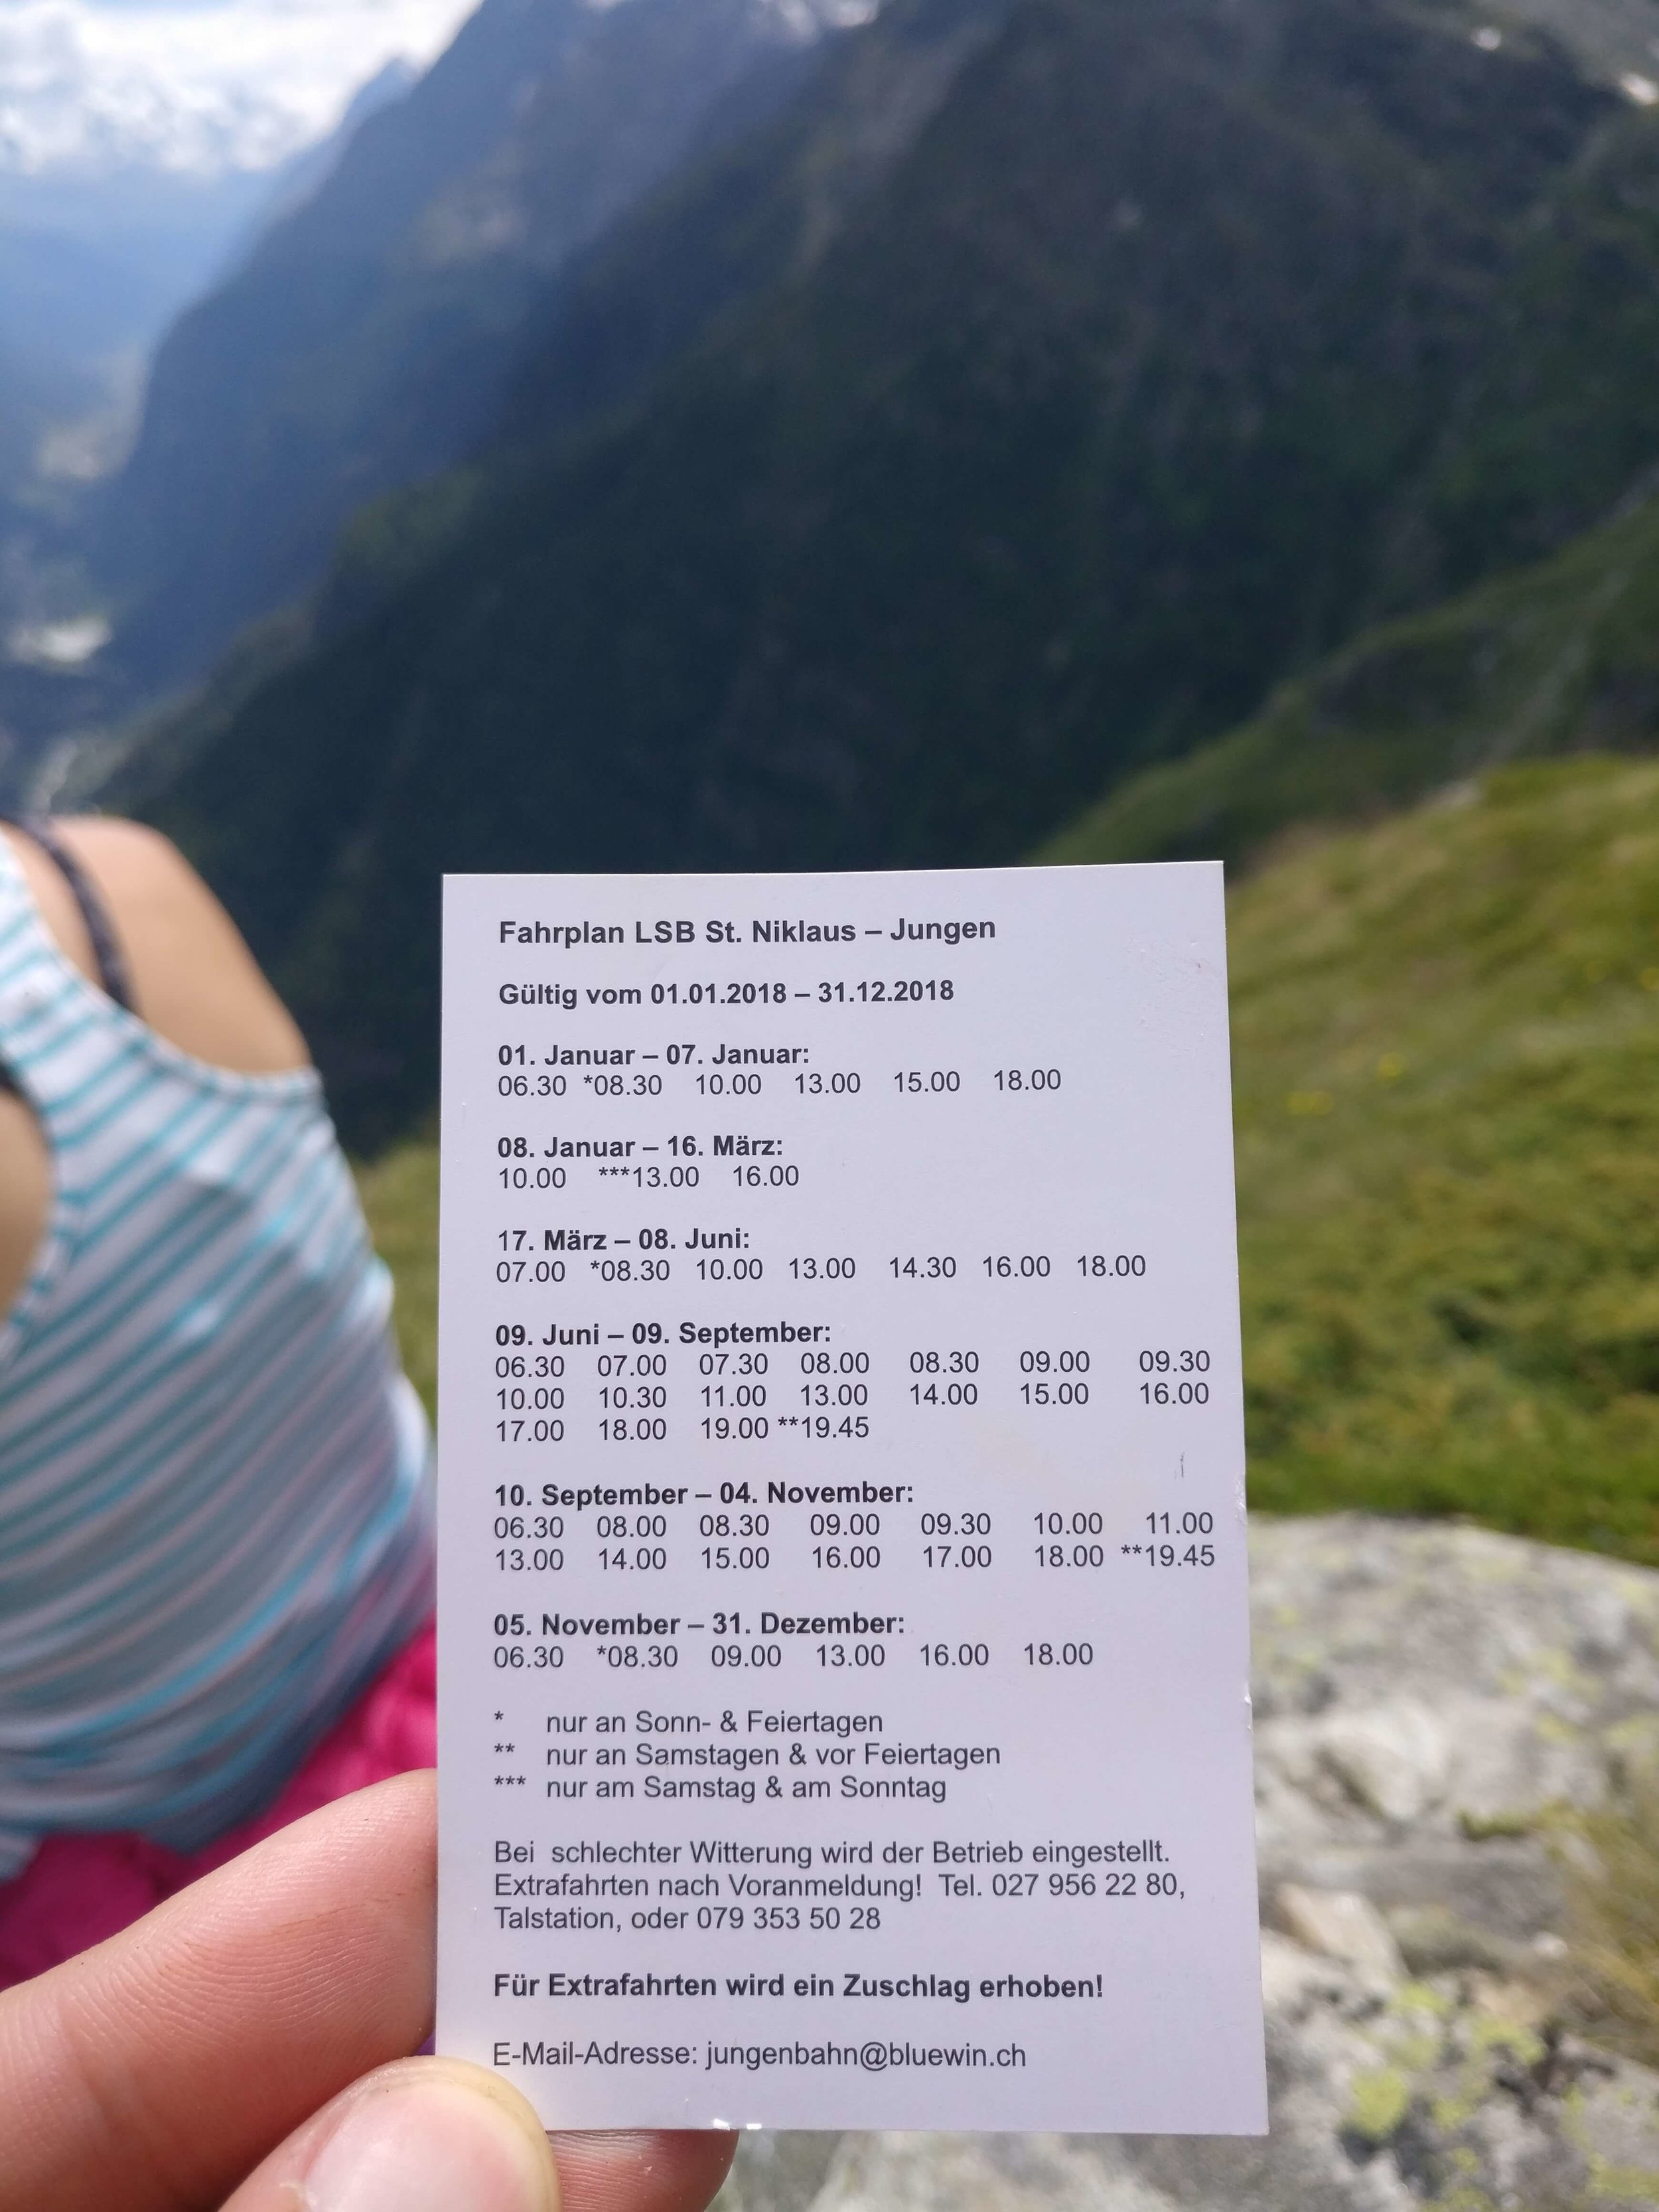 Haute Route distance from Chamonix to Zermatt may require a hiker to catch a gondola shortcut